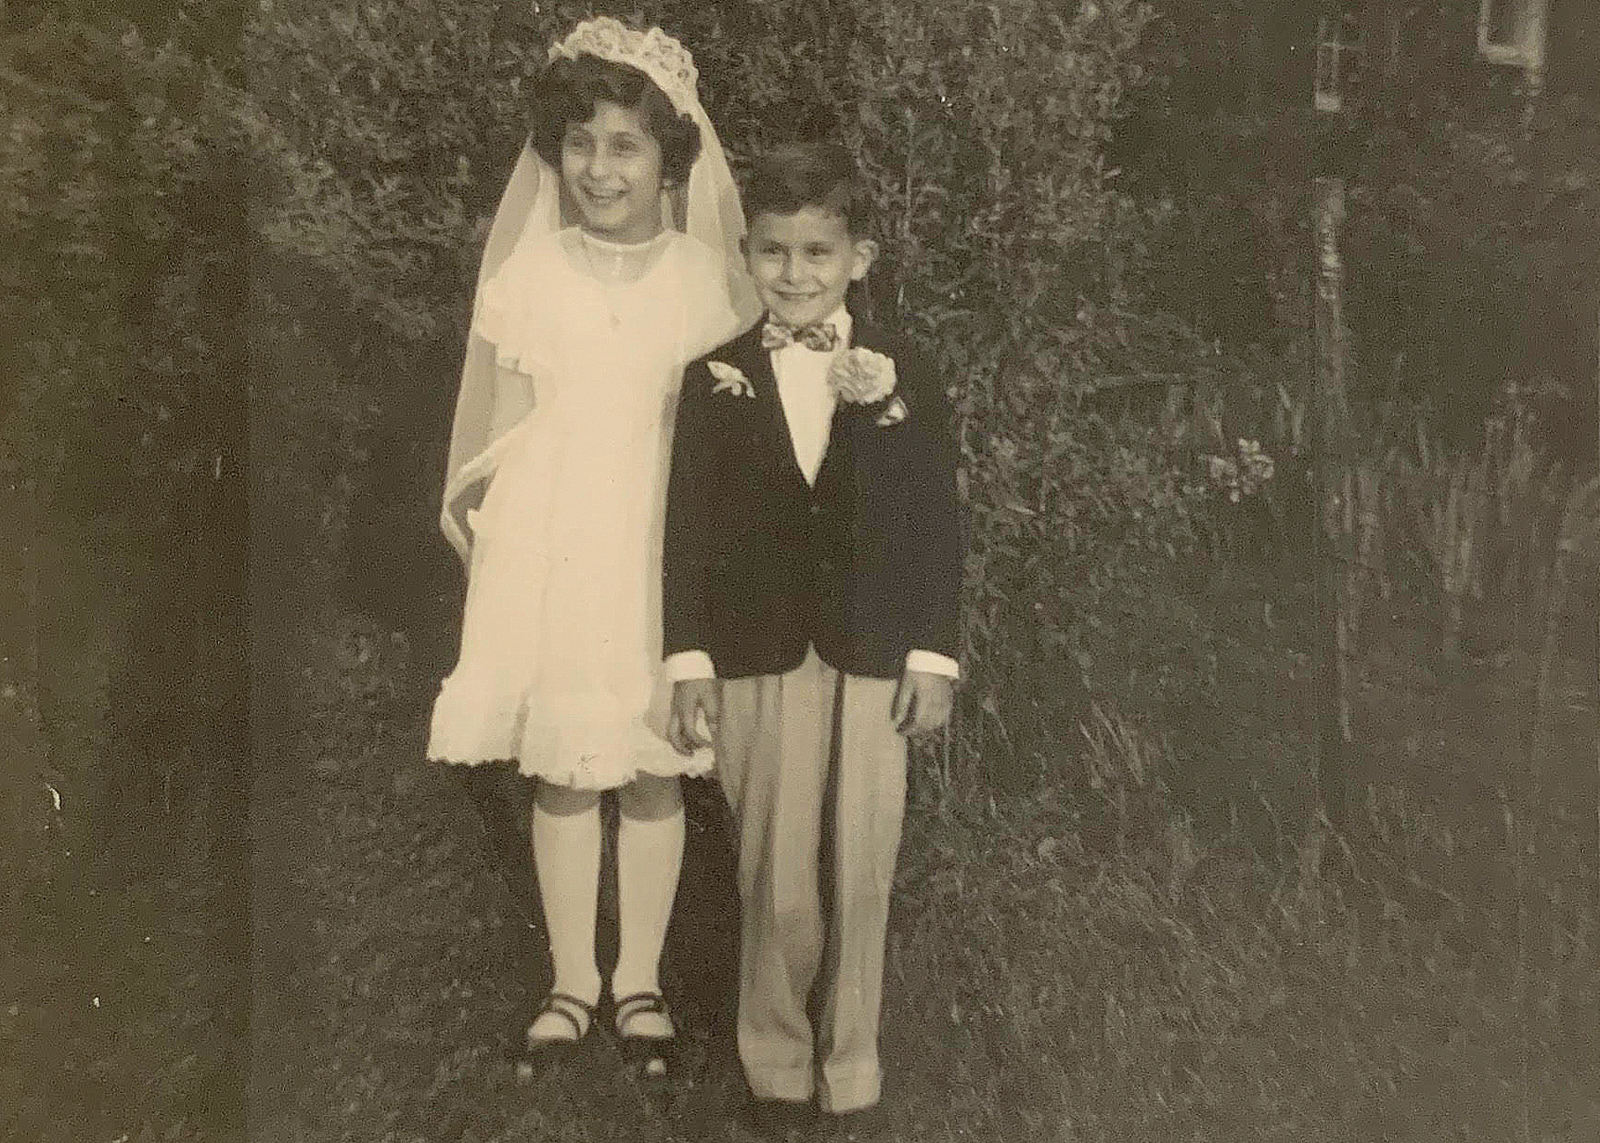 Dona Bartoli, First Communion, 1949, with her brother Bernie. (Family photo)